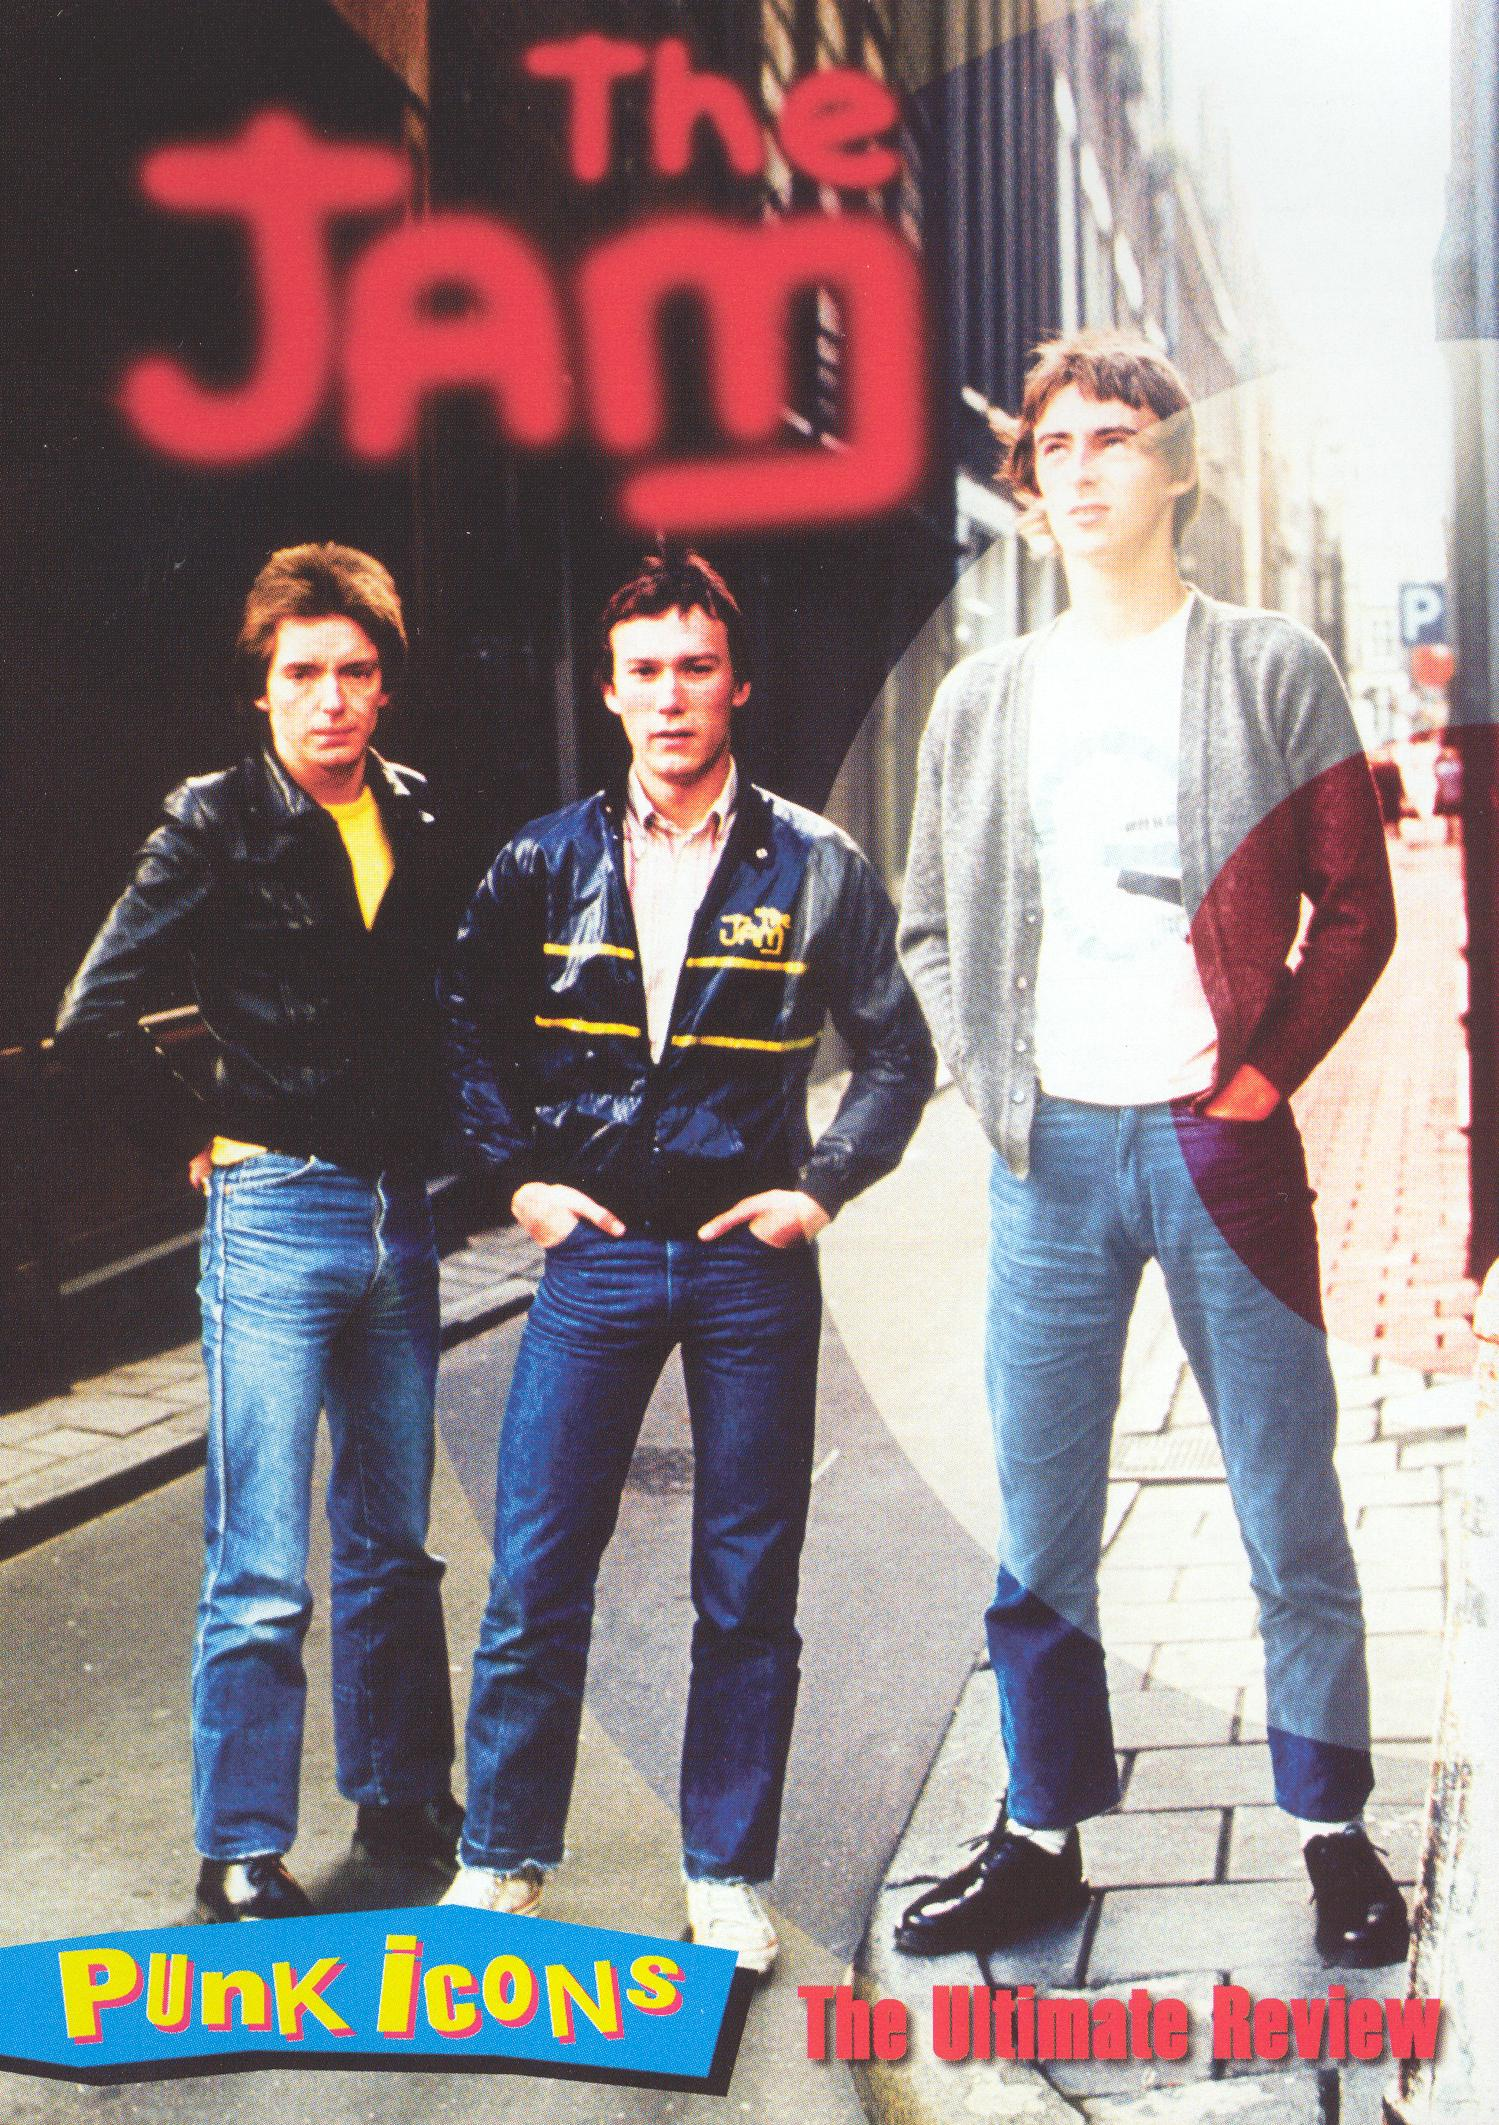 The Jam: The Ultimate Review